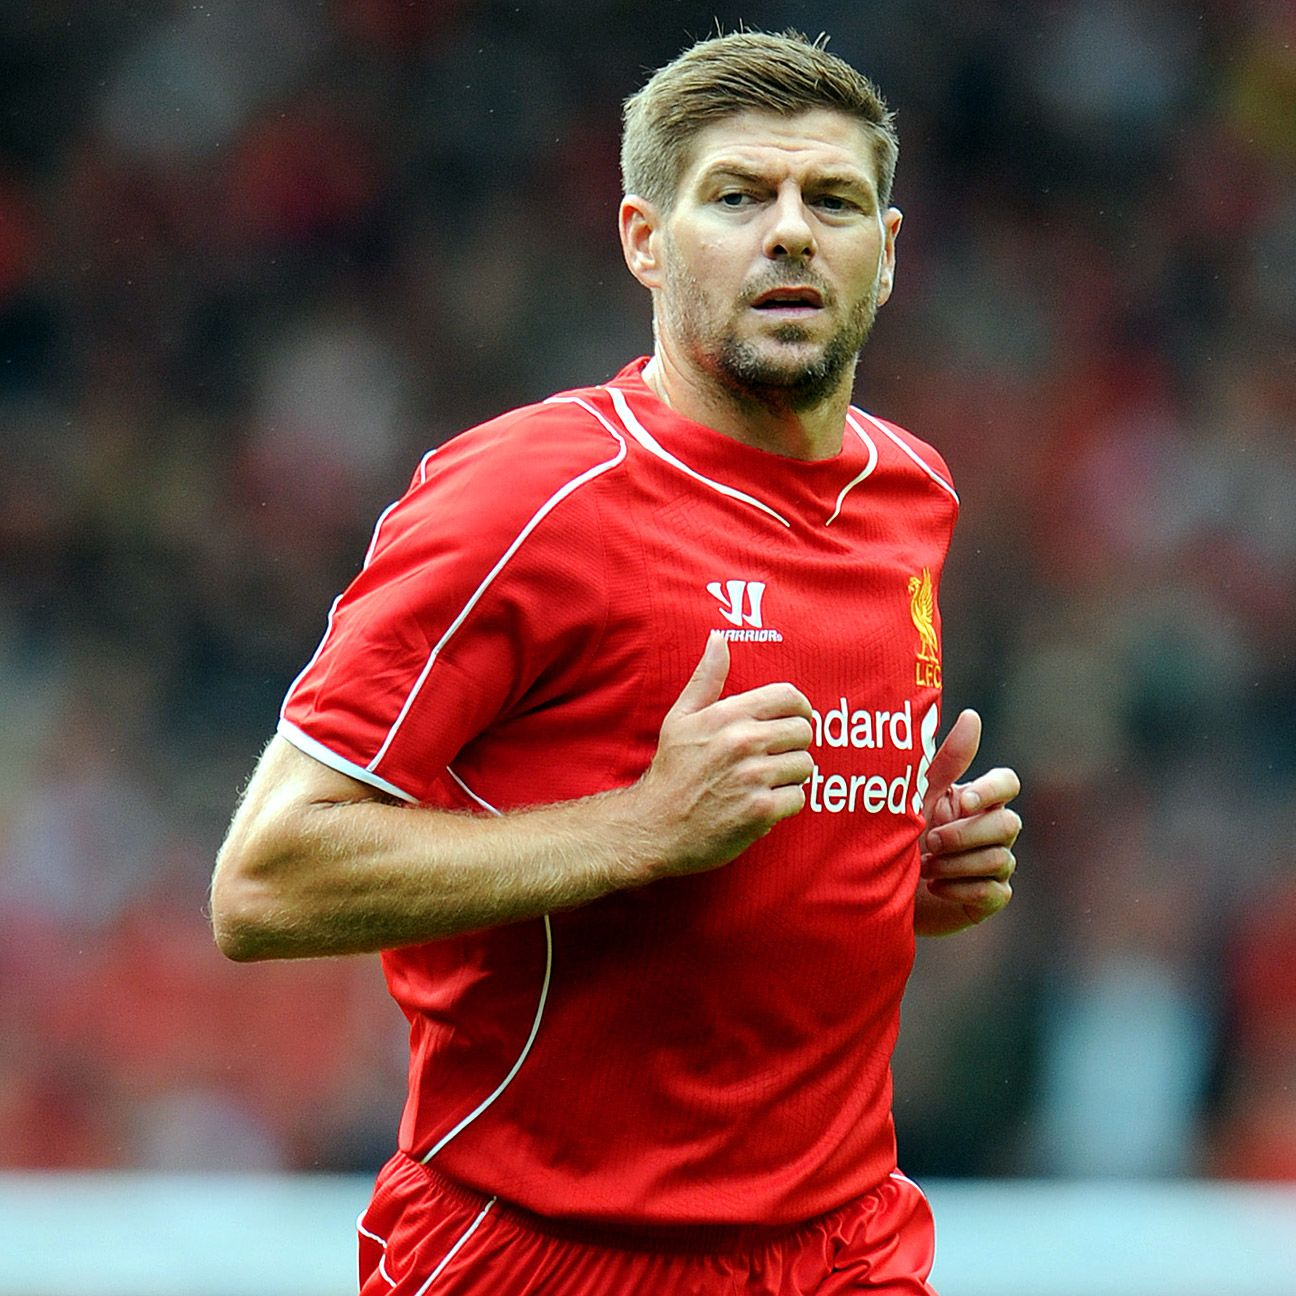 There are whispers that Steven Gerrard could be departing Anfield for MLS.